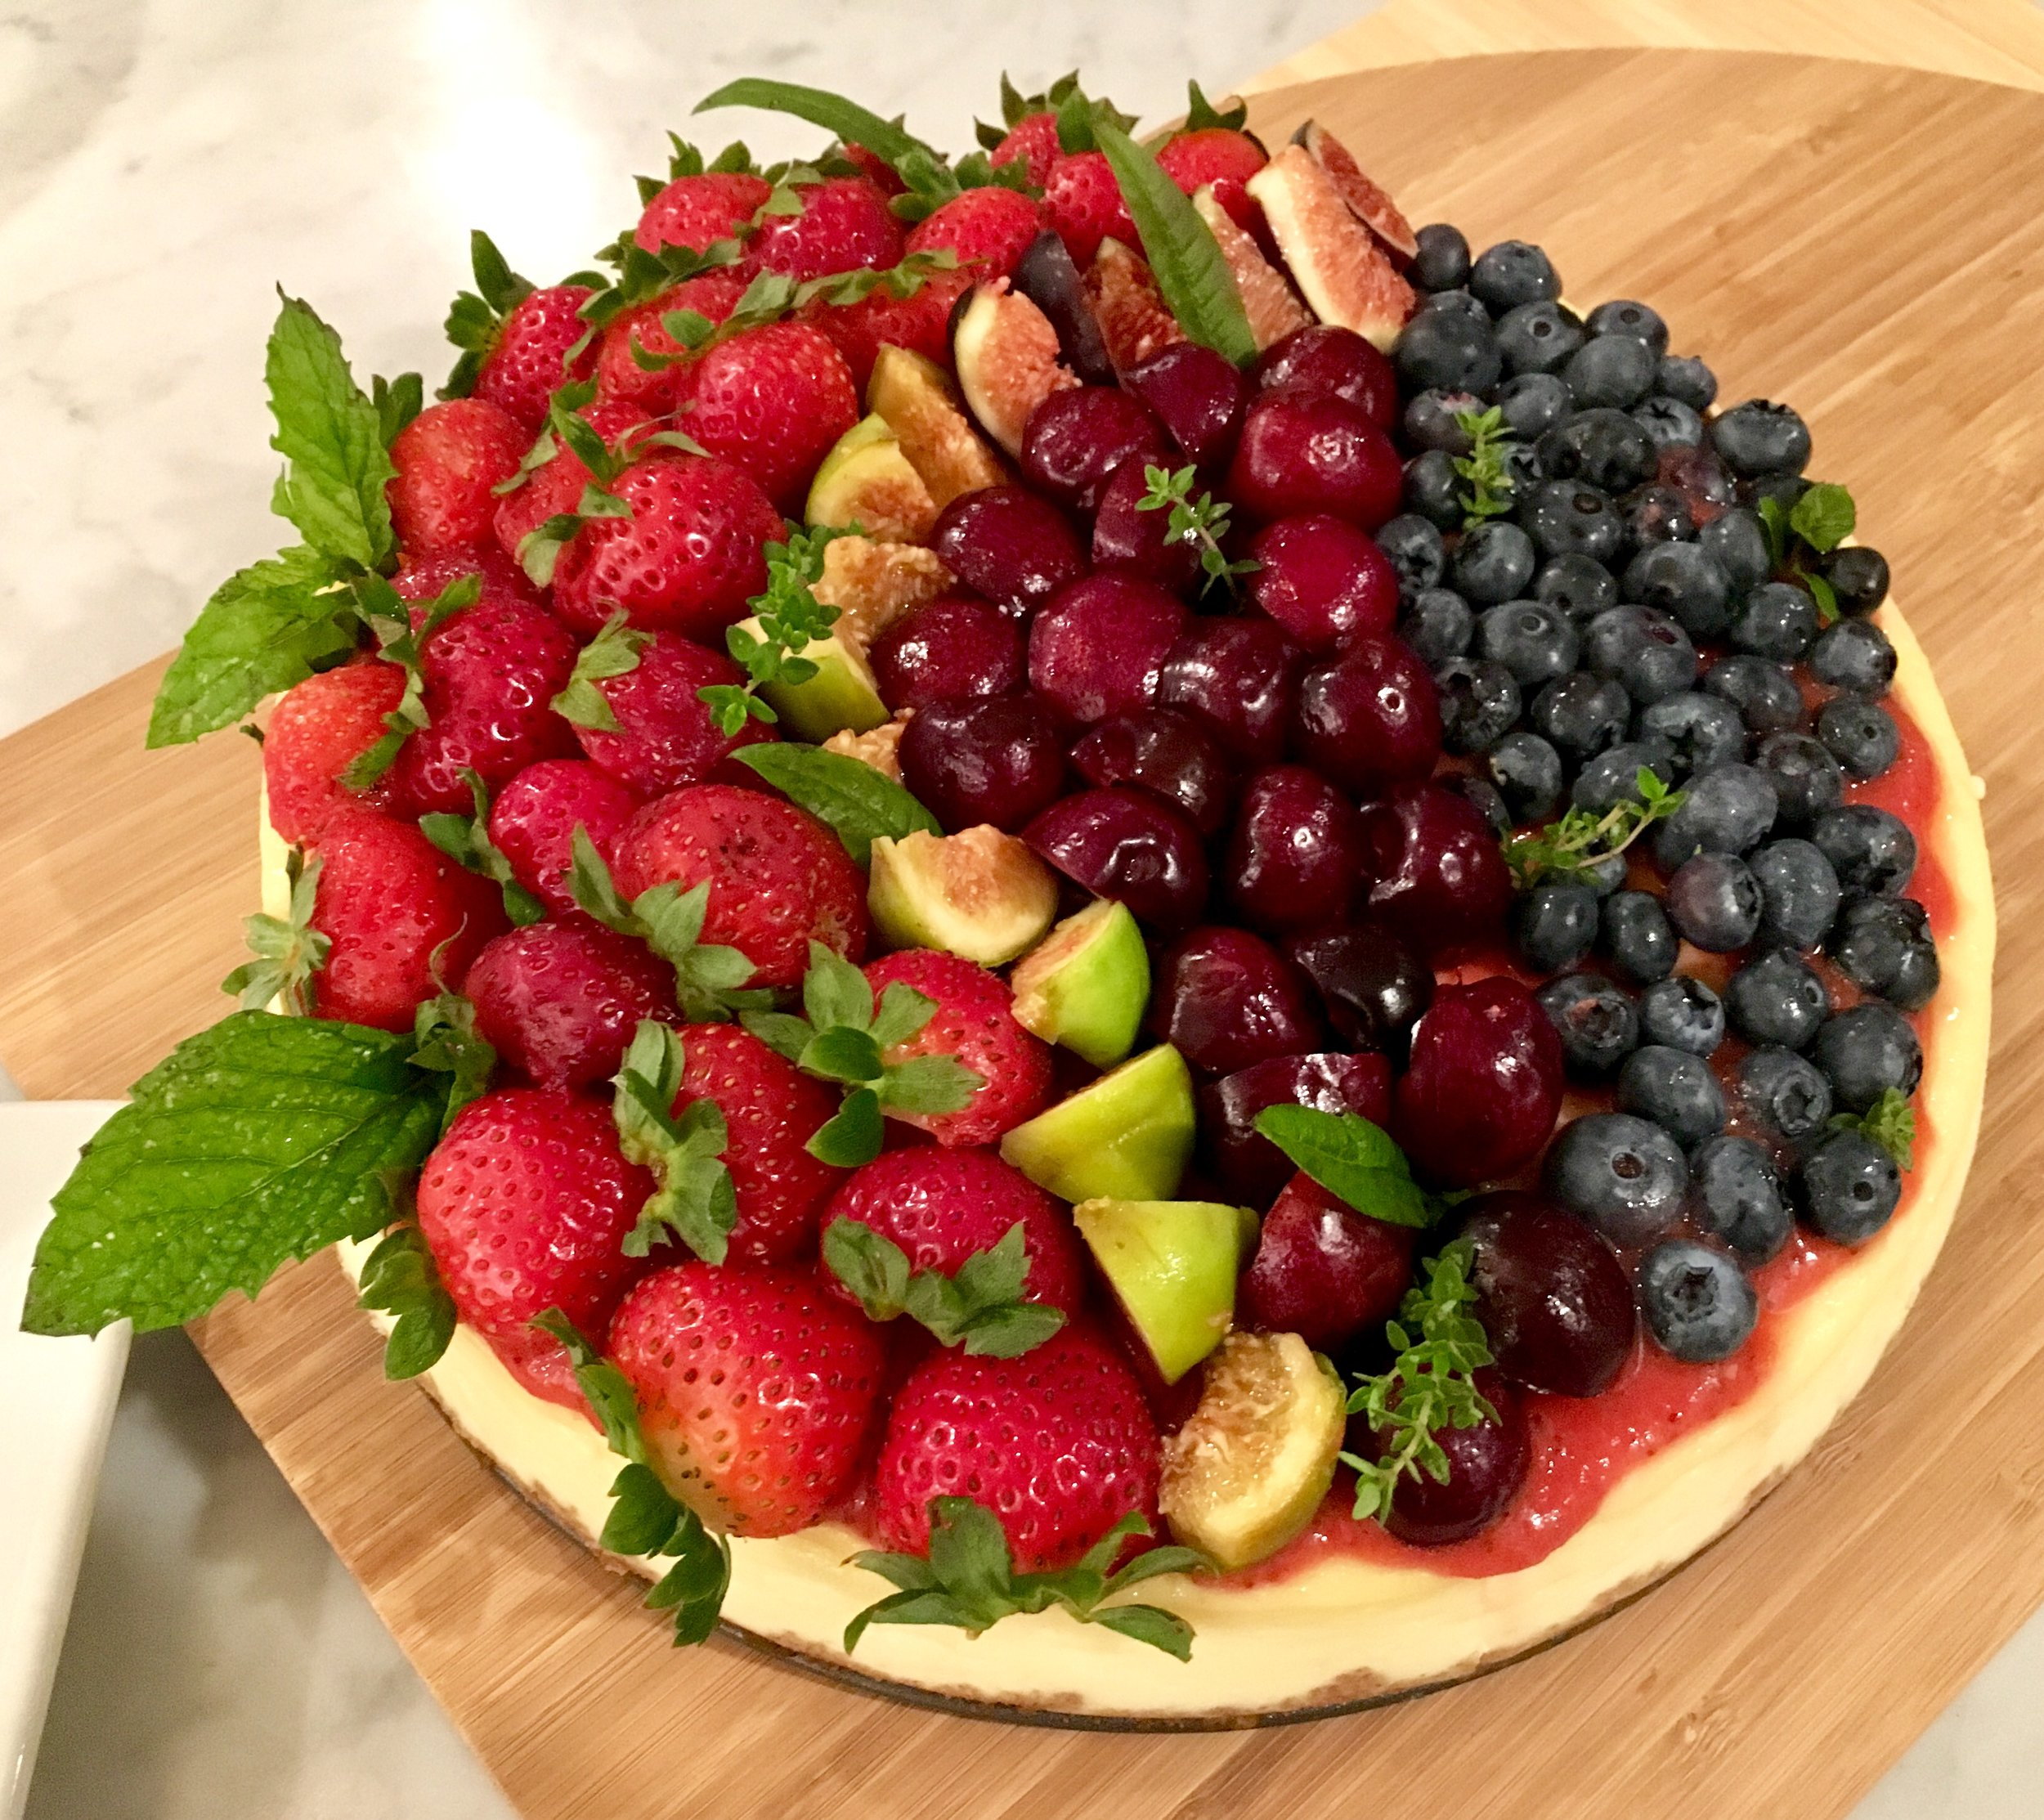 New York cheesecake with summer fruits